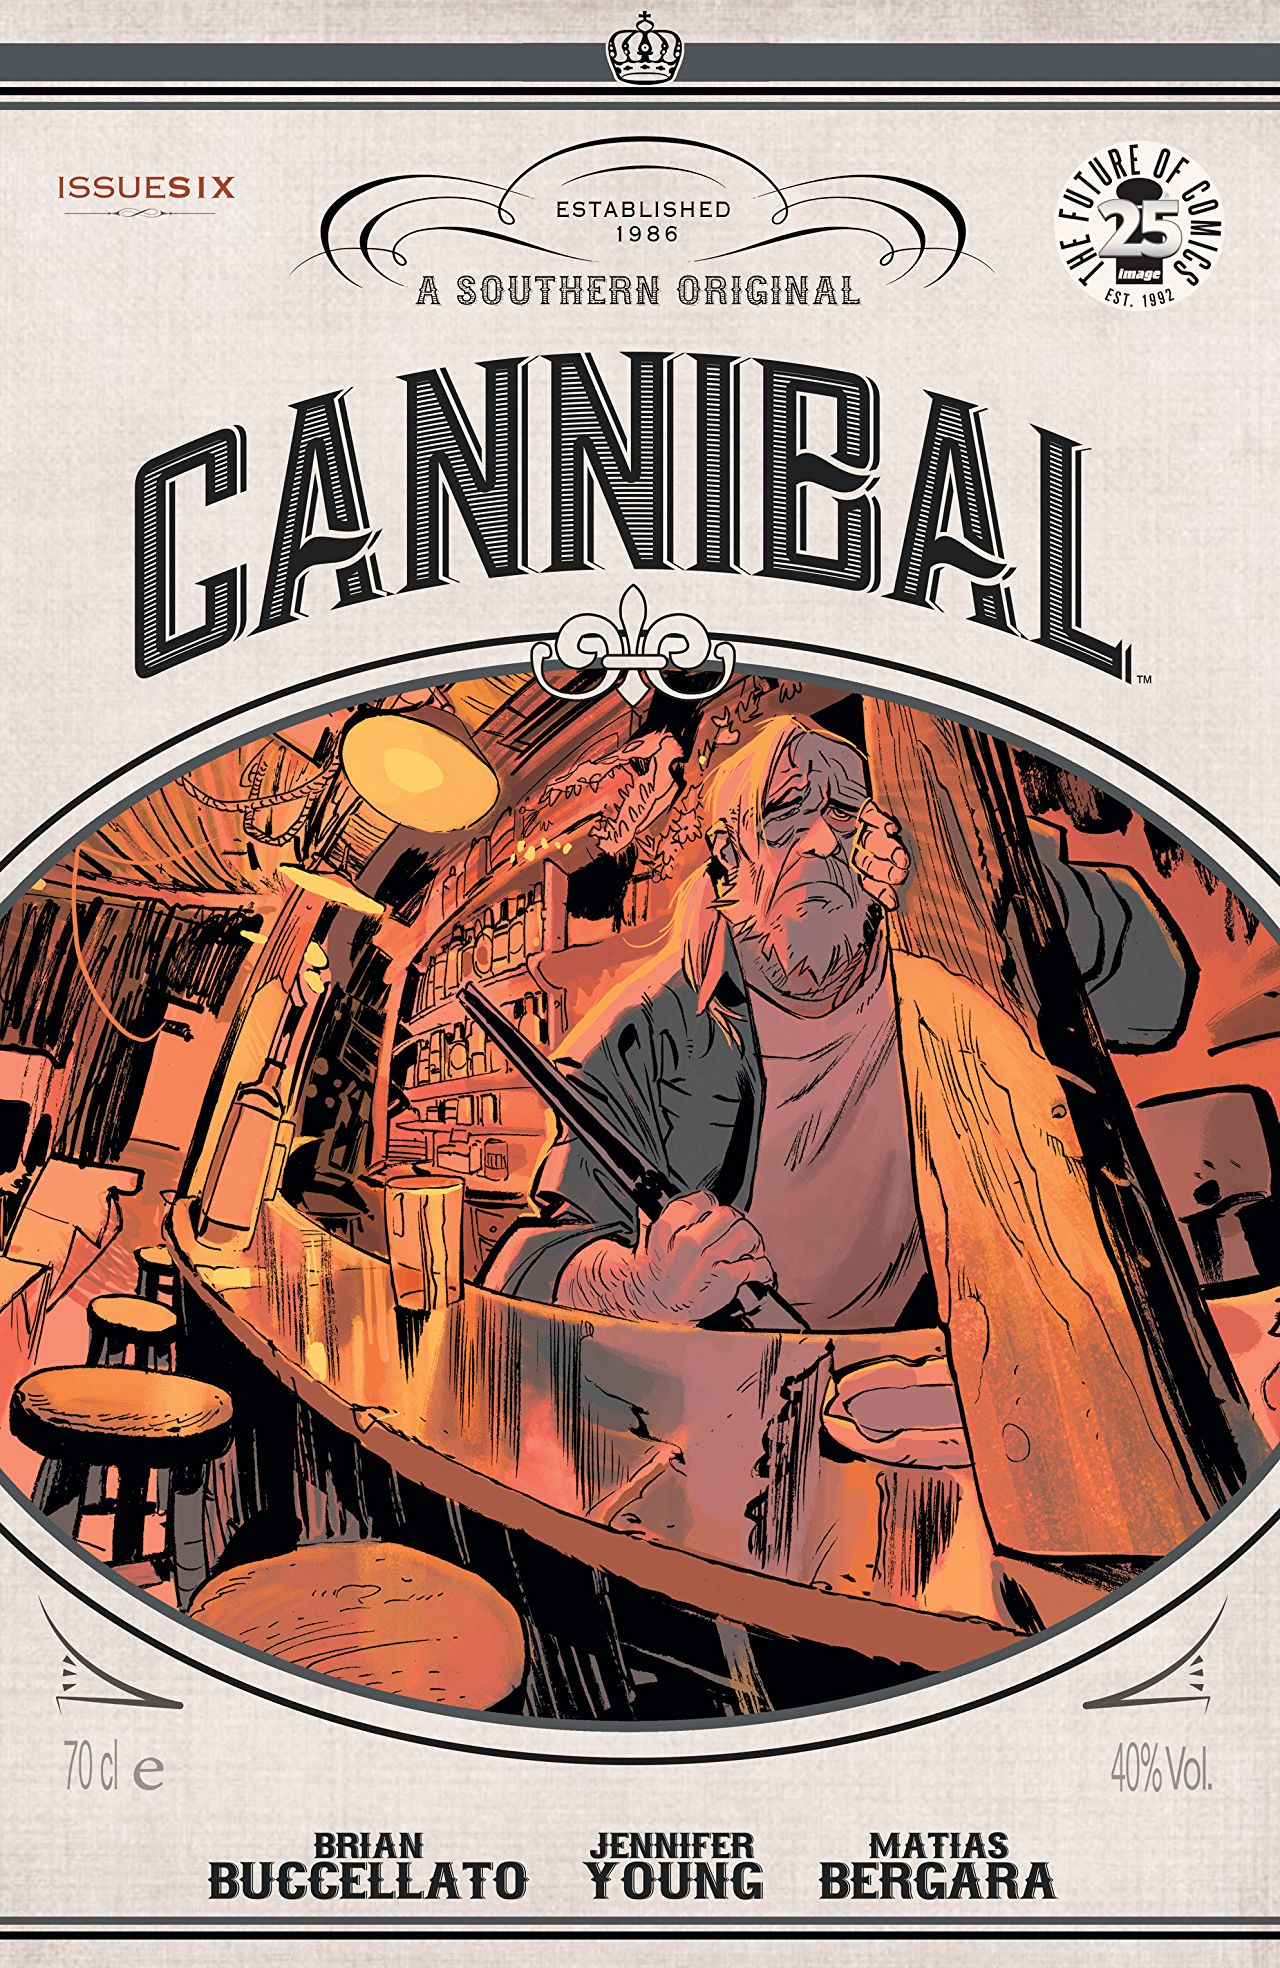 Cannibal #6 Review